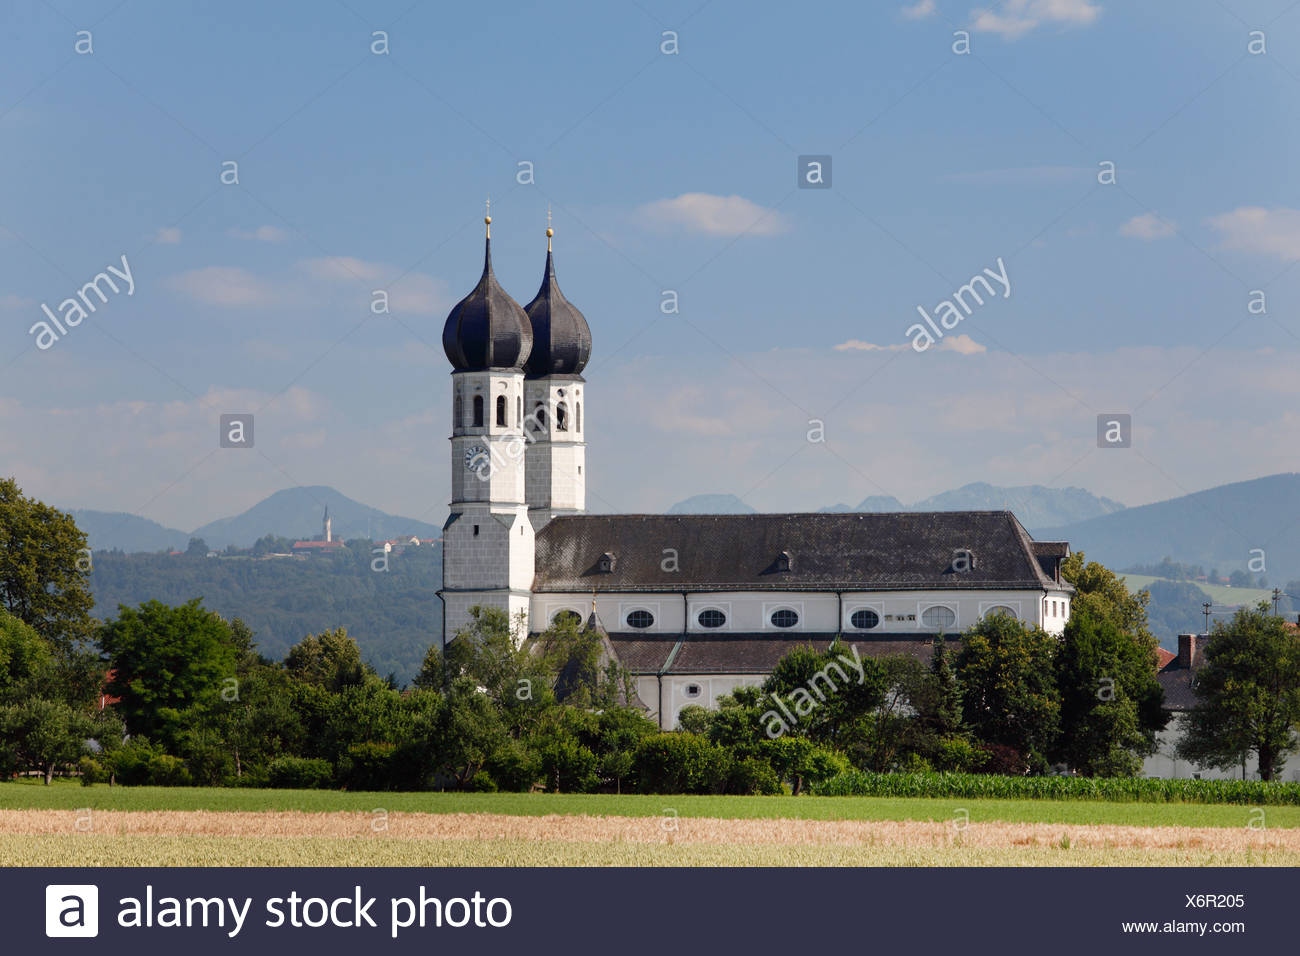 Holy Trinity pilgrimage church, church of Heilige Dreifaltigkeit, Weihenlinden, parish of Bruckmuehl, Upper Bavaria, Bavaria - Stock Image